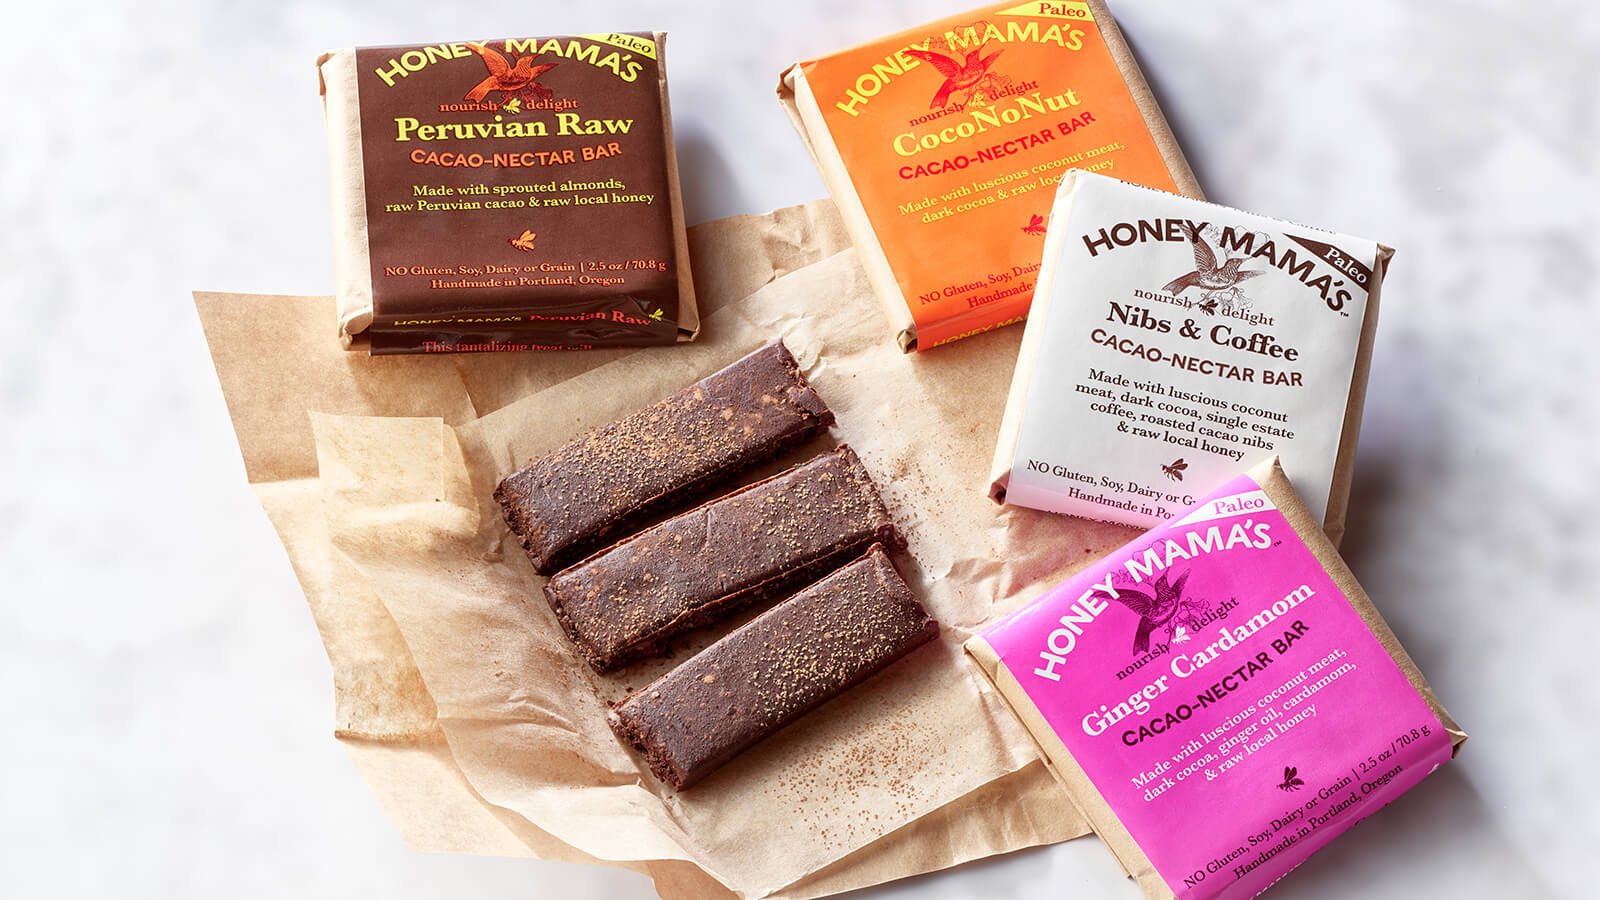 Honey Mama's Cacao-Nectar Bars